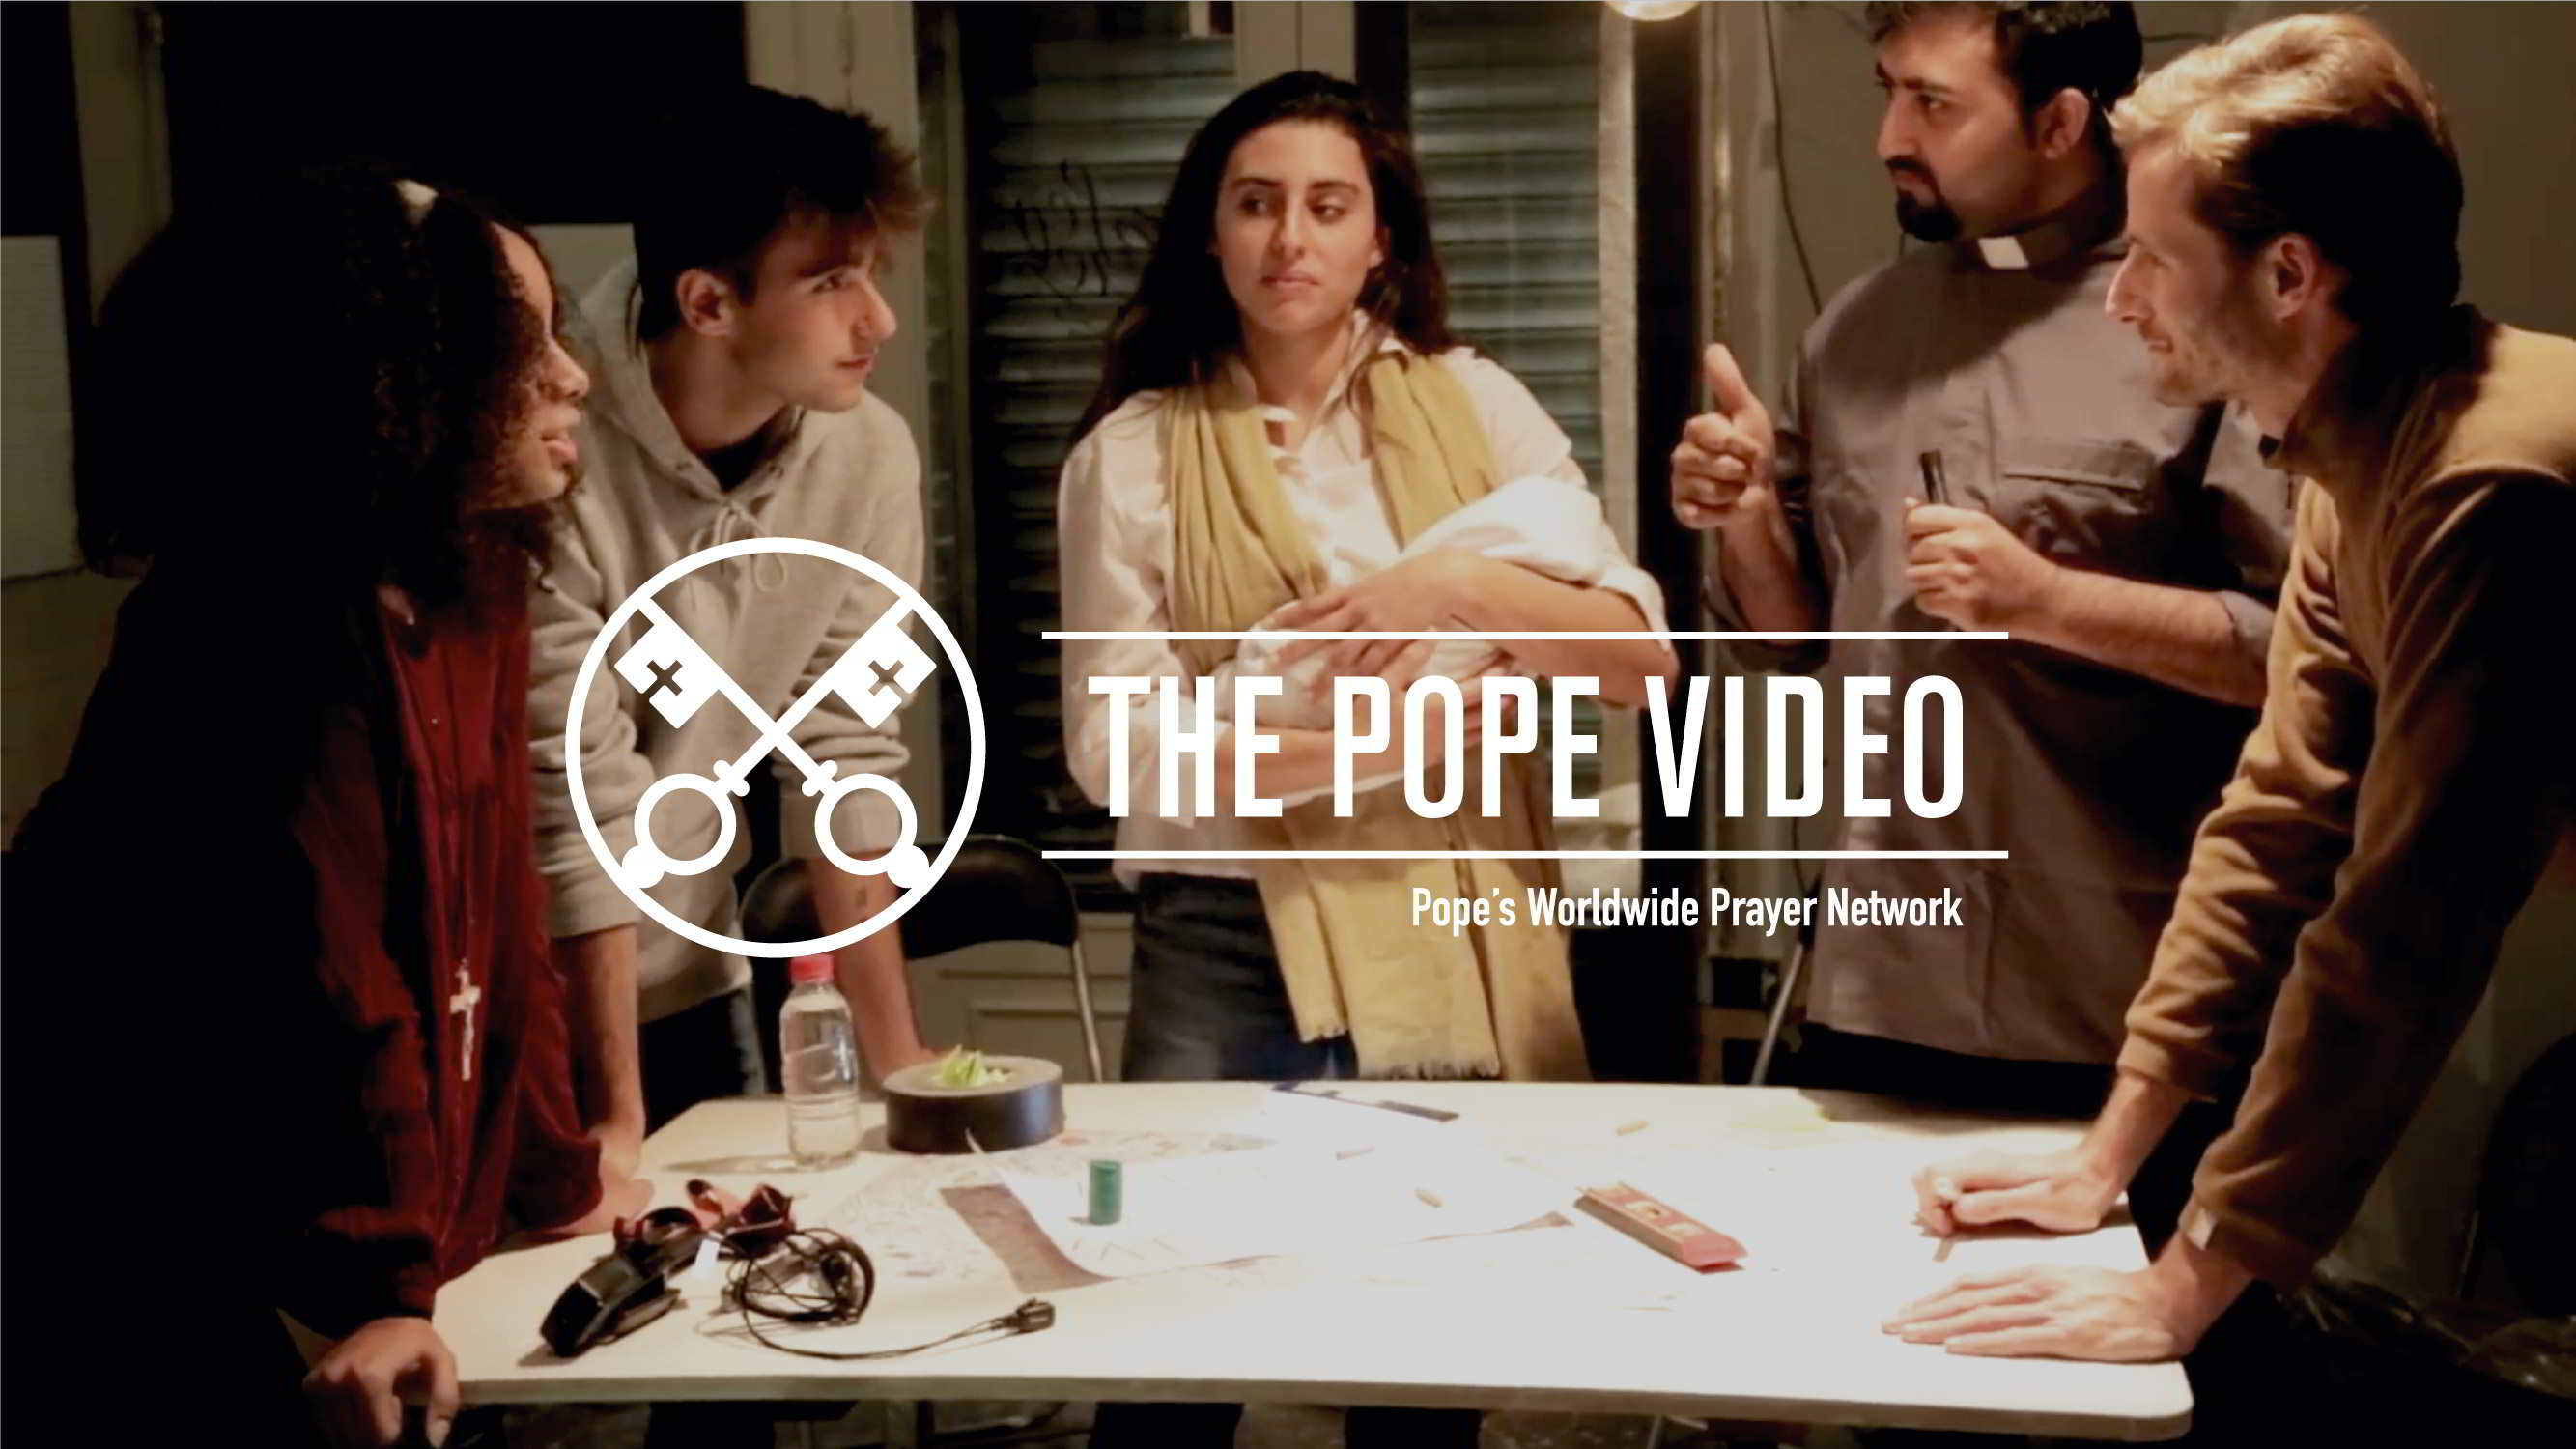 Official Image - TPV 12 2018 - 1 EN - The Pope Video - In the service of the transmission of faith